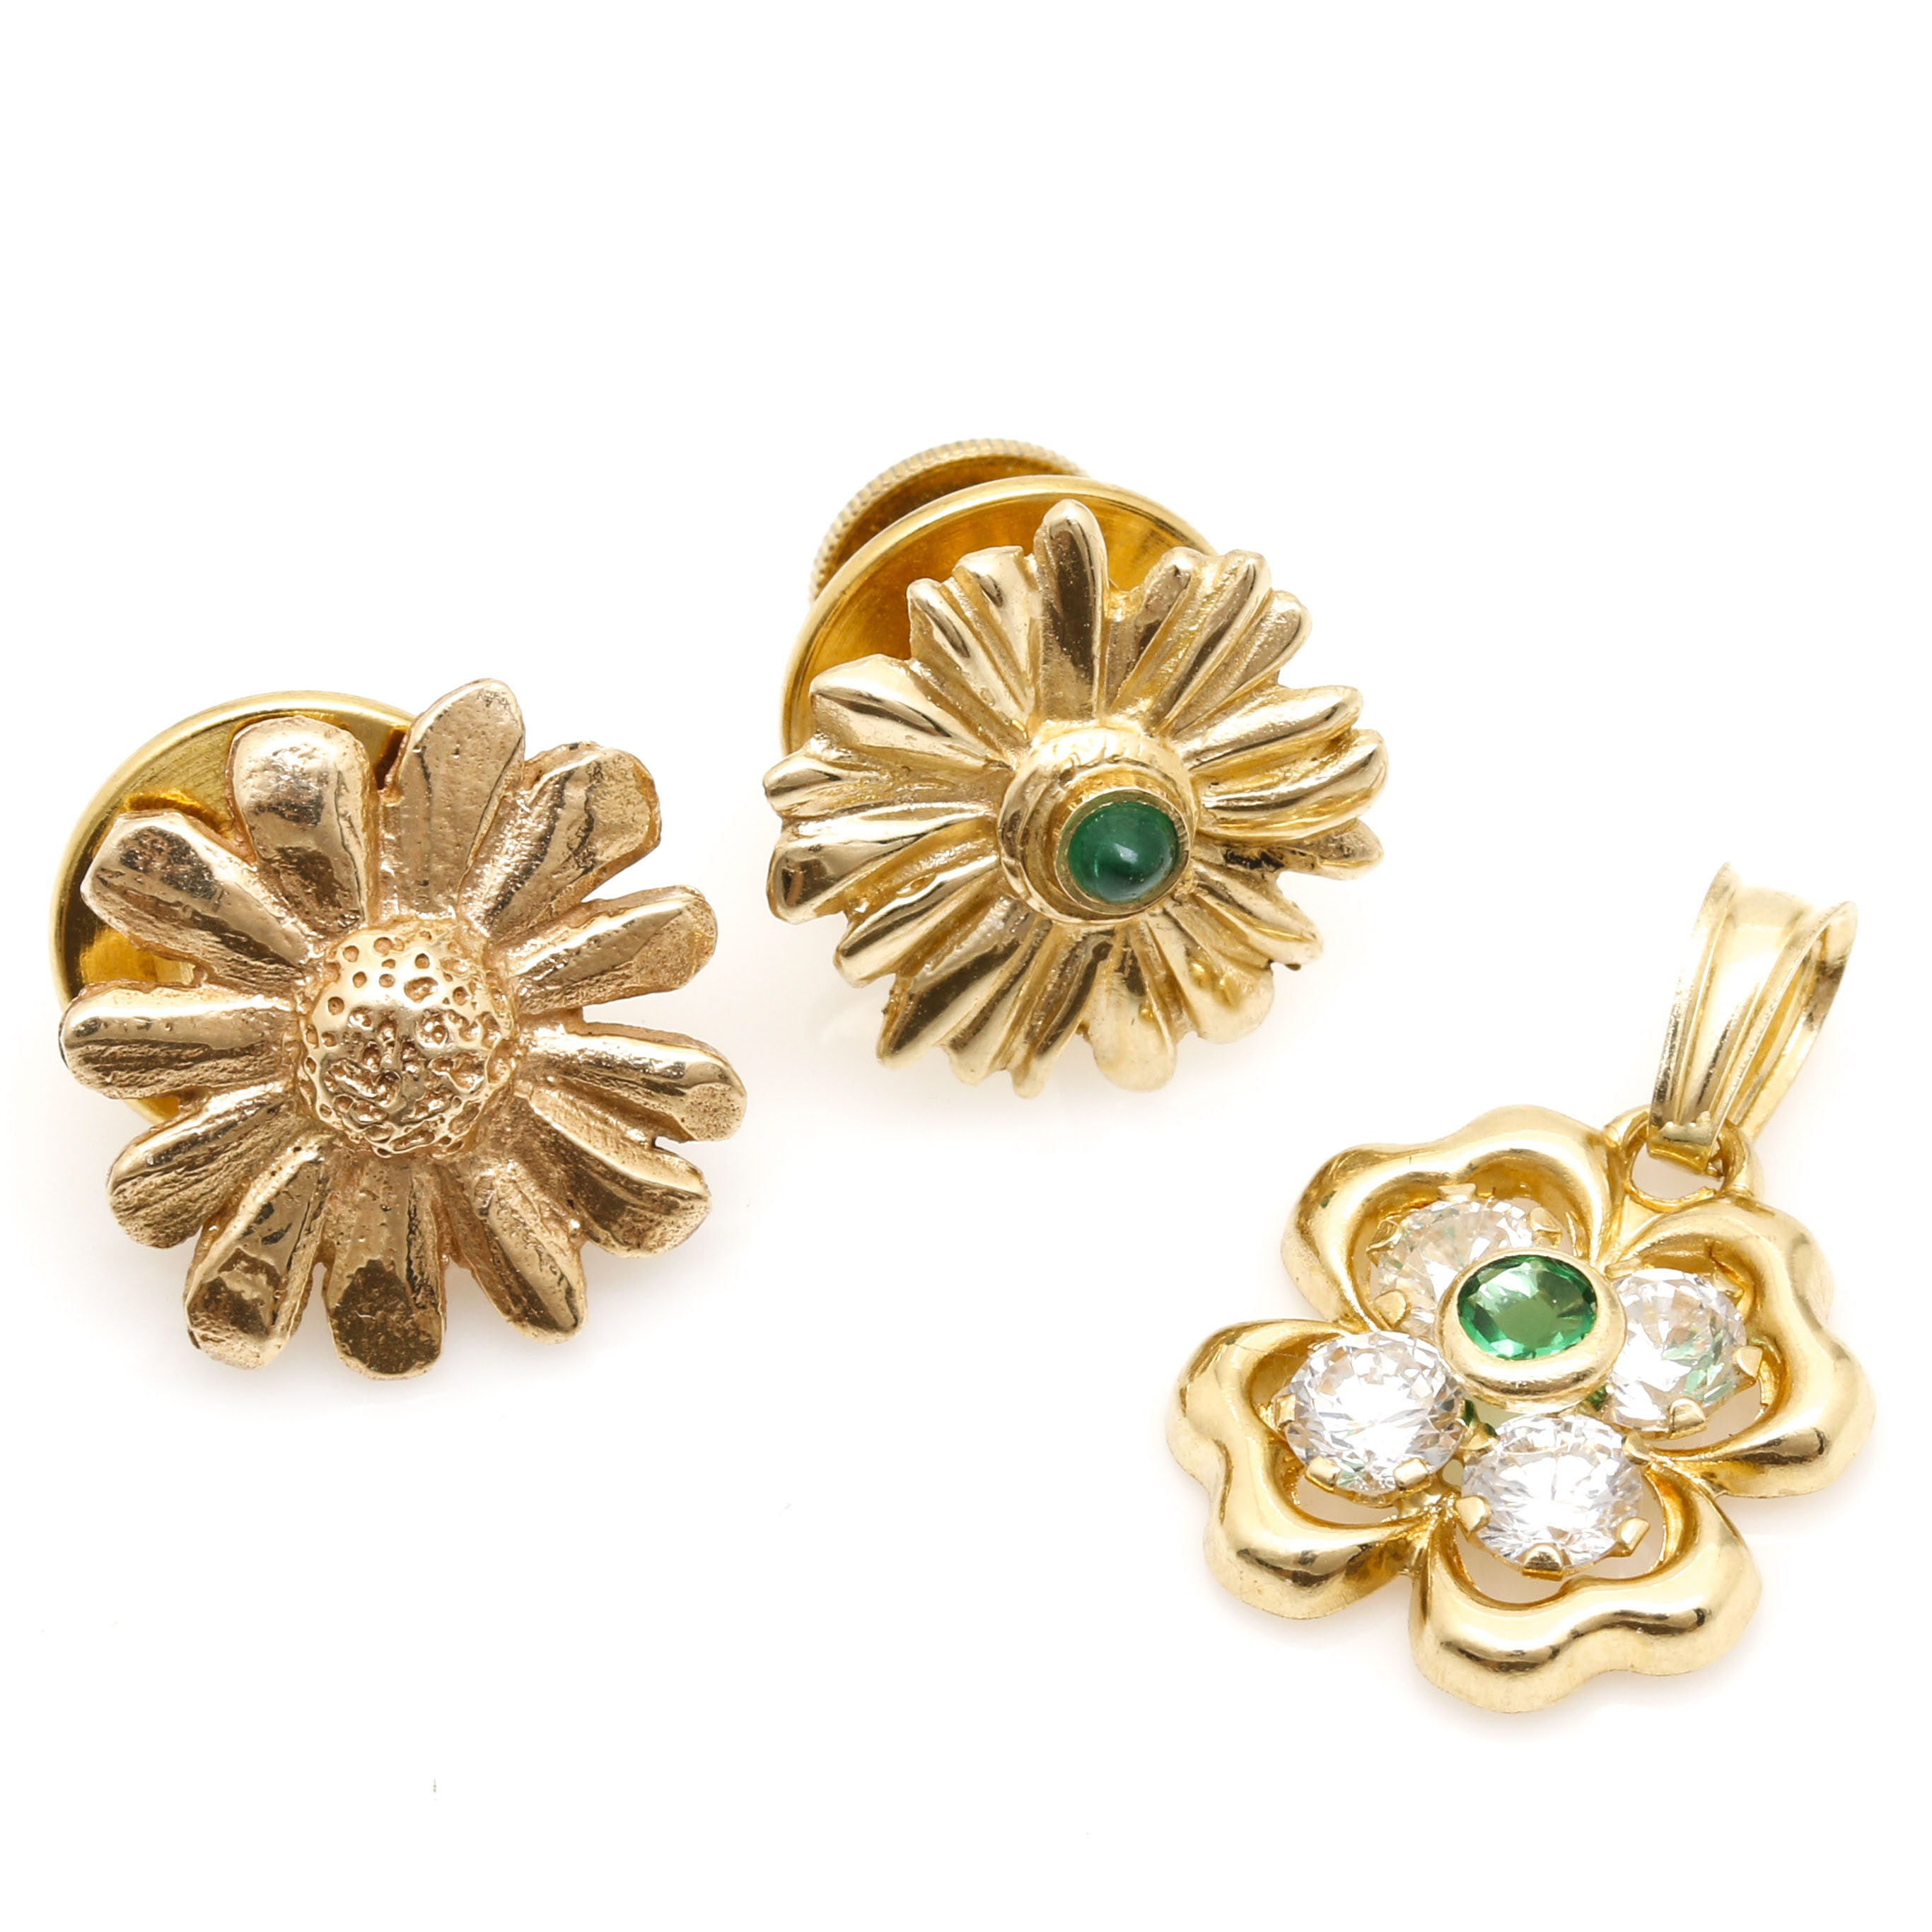 14K Yellow Gold Floral Lapel Pins With 18K Floral Pendant